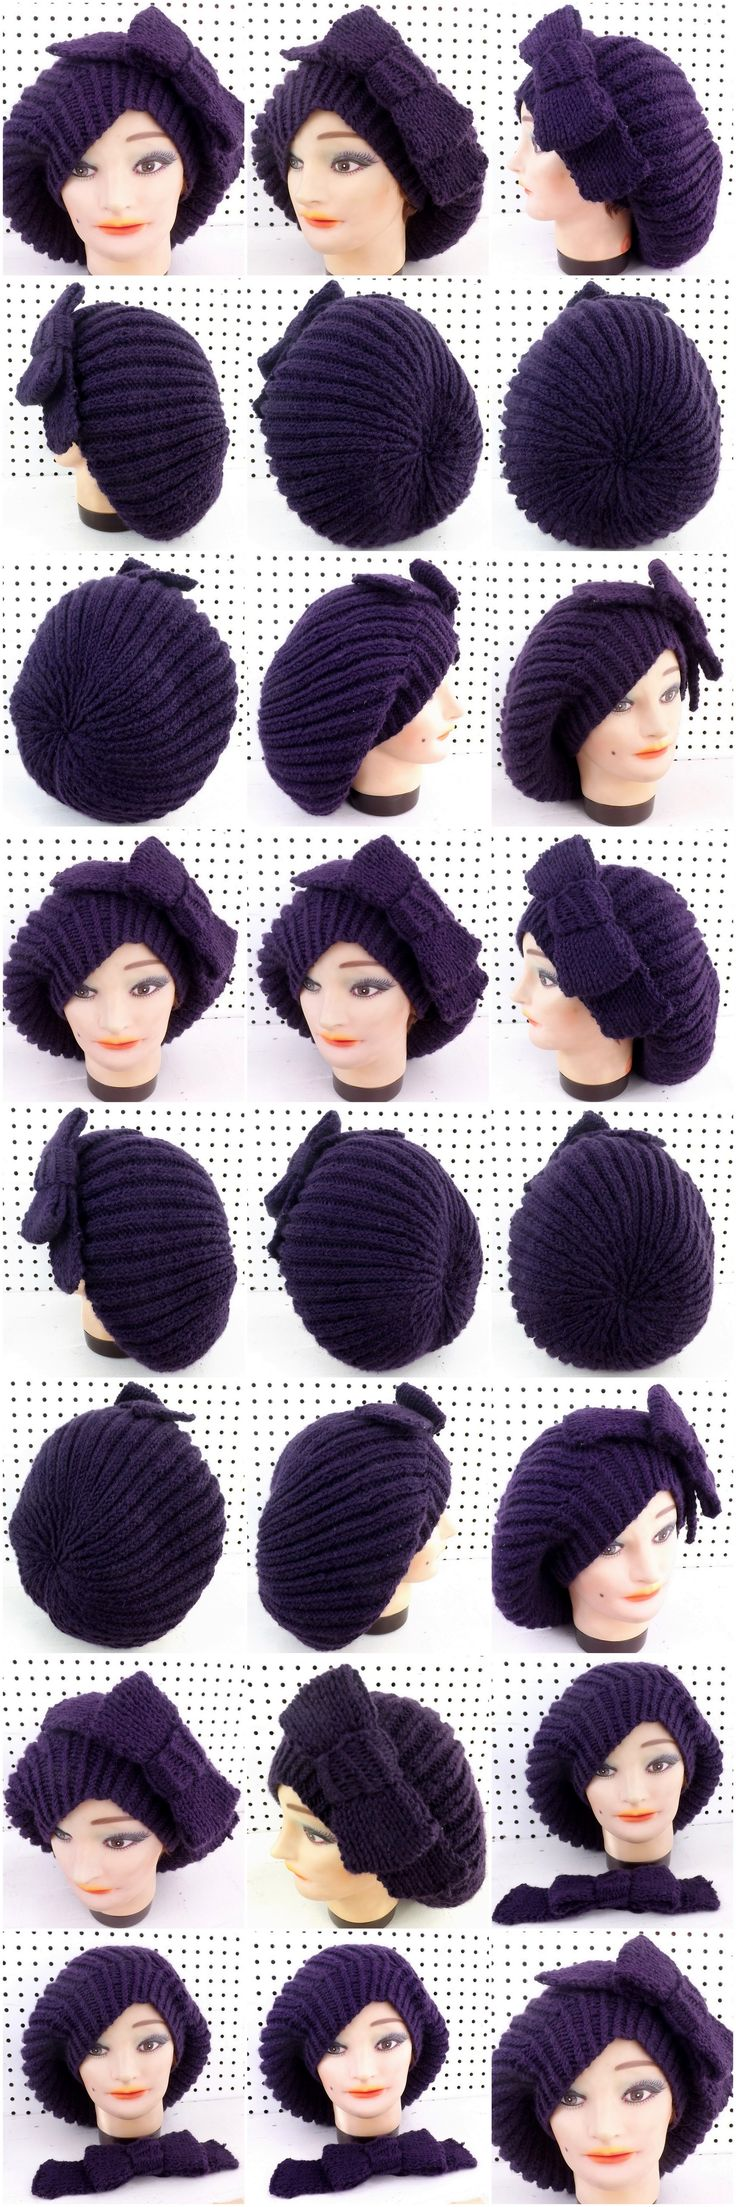 http://www.etsy.com/listing/159388158/knit-hat-women-hat-mary-slouchy-beret?ref=shop_home_active MARY Knit Beret Hat with Ribbon Pin in Purple